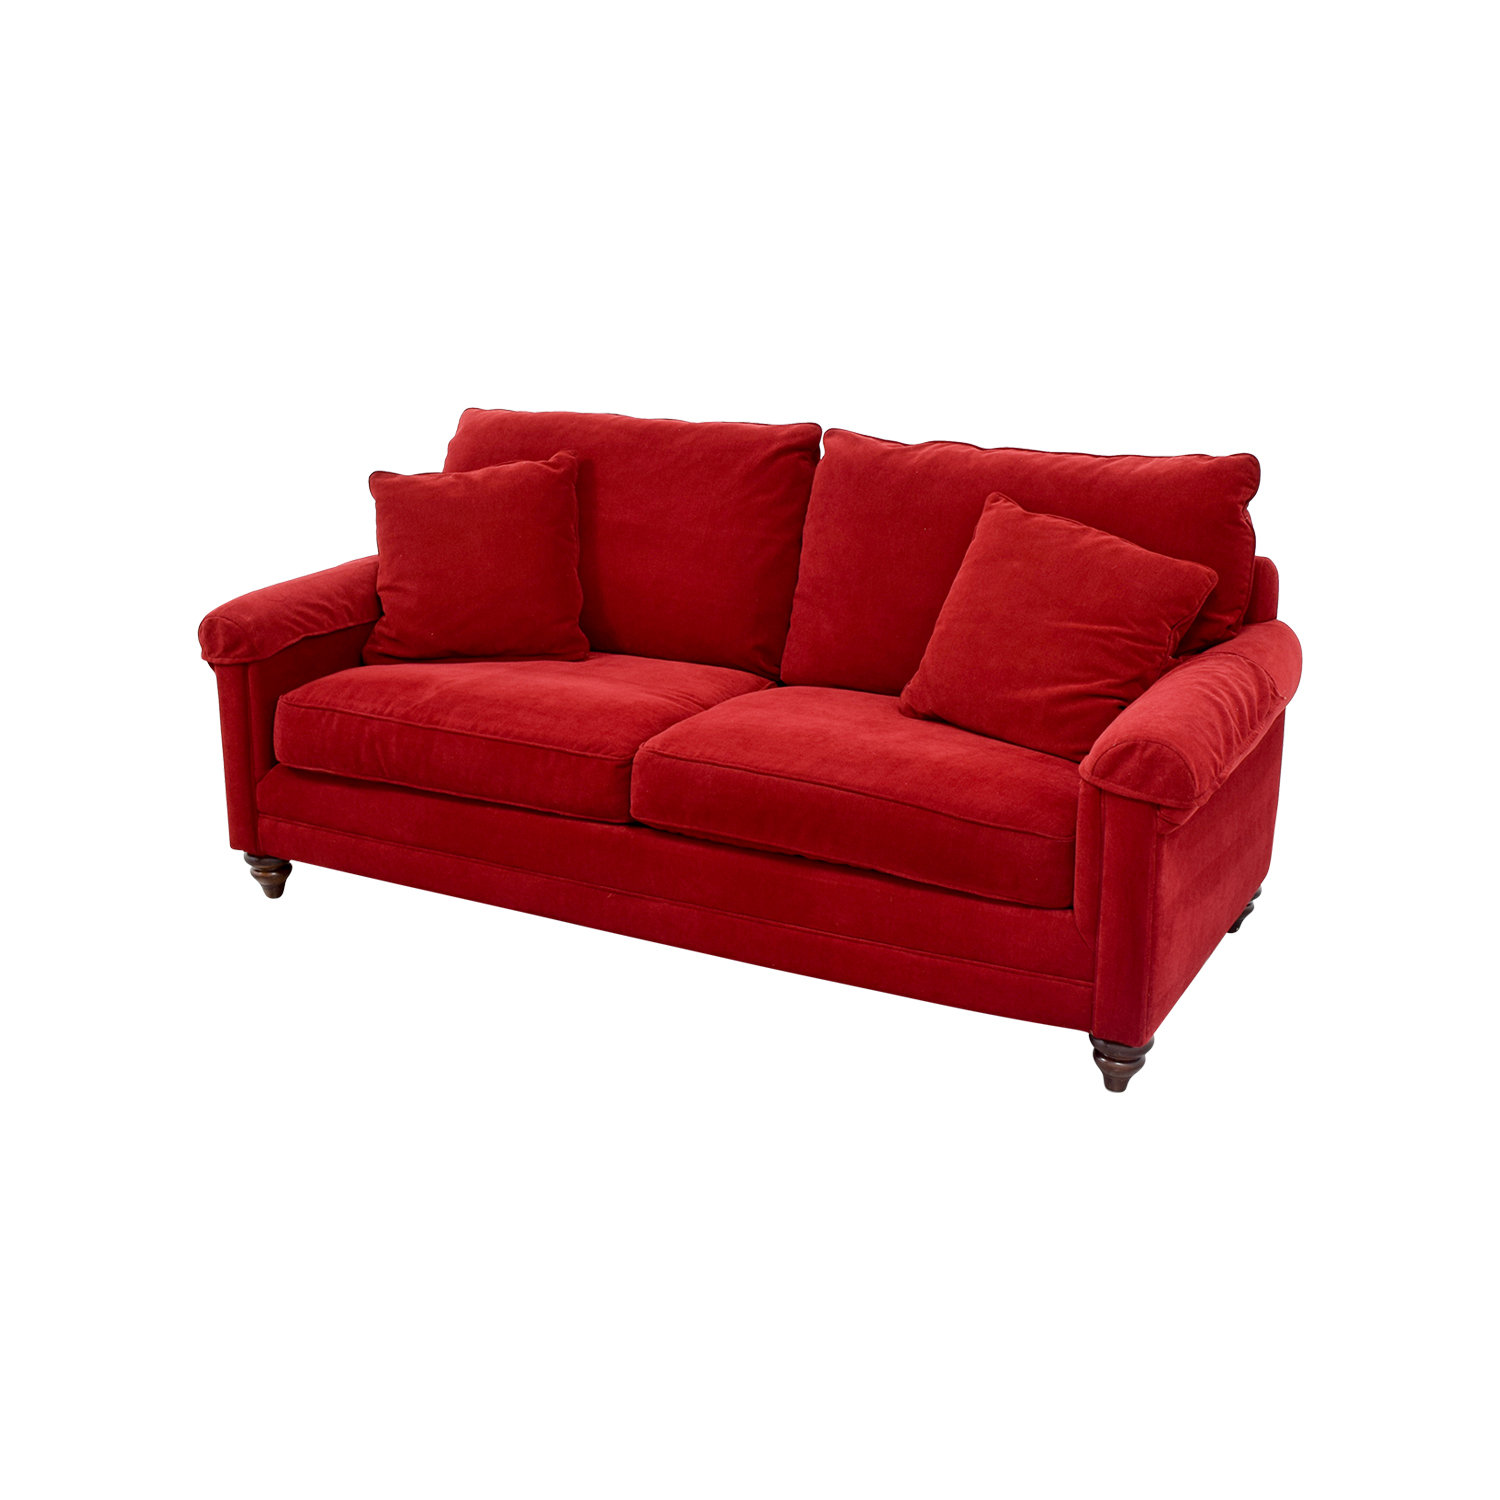 bassett sofa bed grey chenille sectional 88 off red curved arm two cushion couch